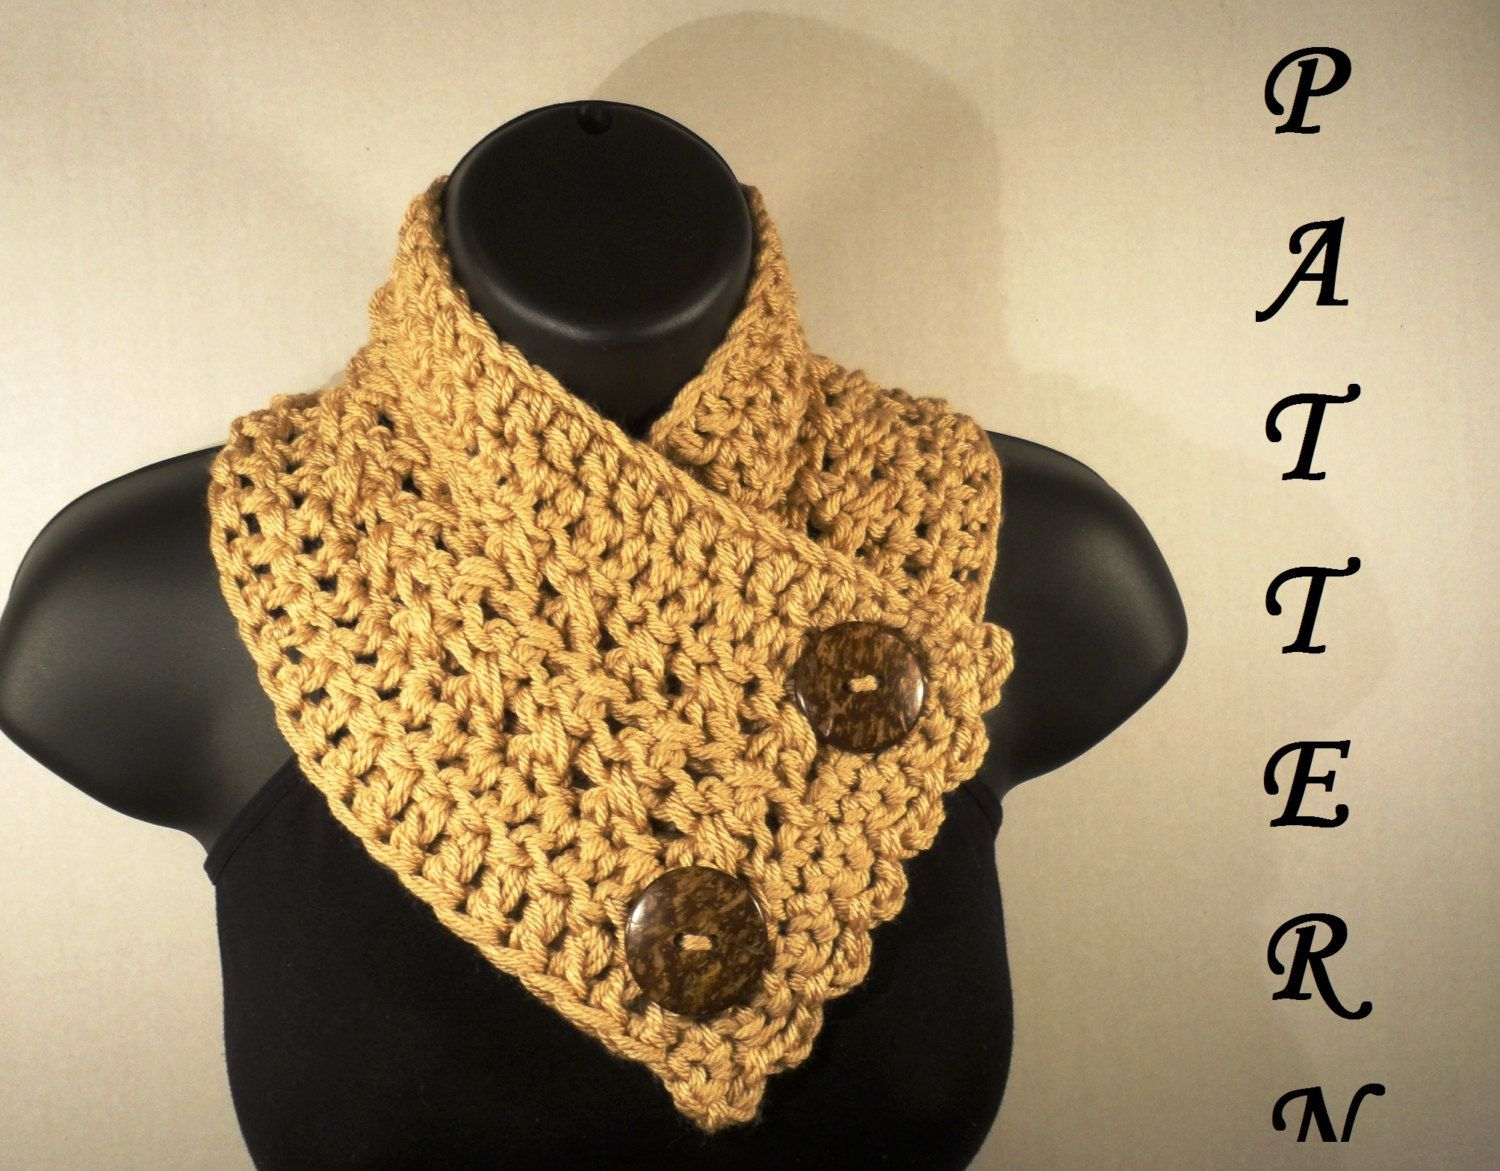 Crochet+Scarf+Pattern+Beginner | Request a custom order and have ...